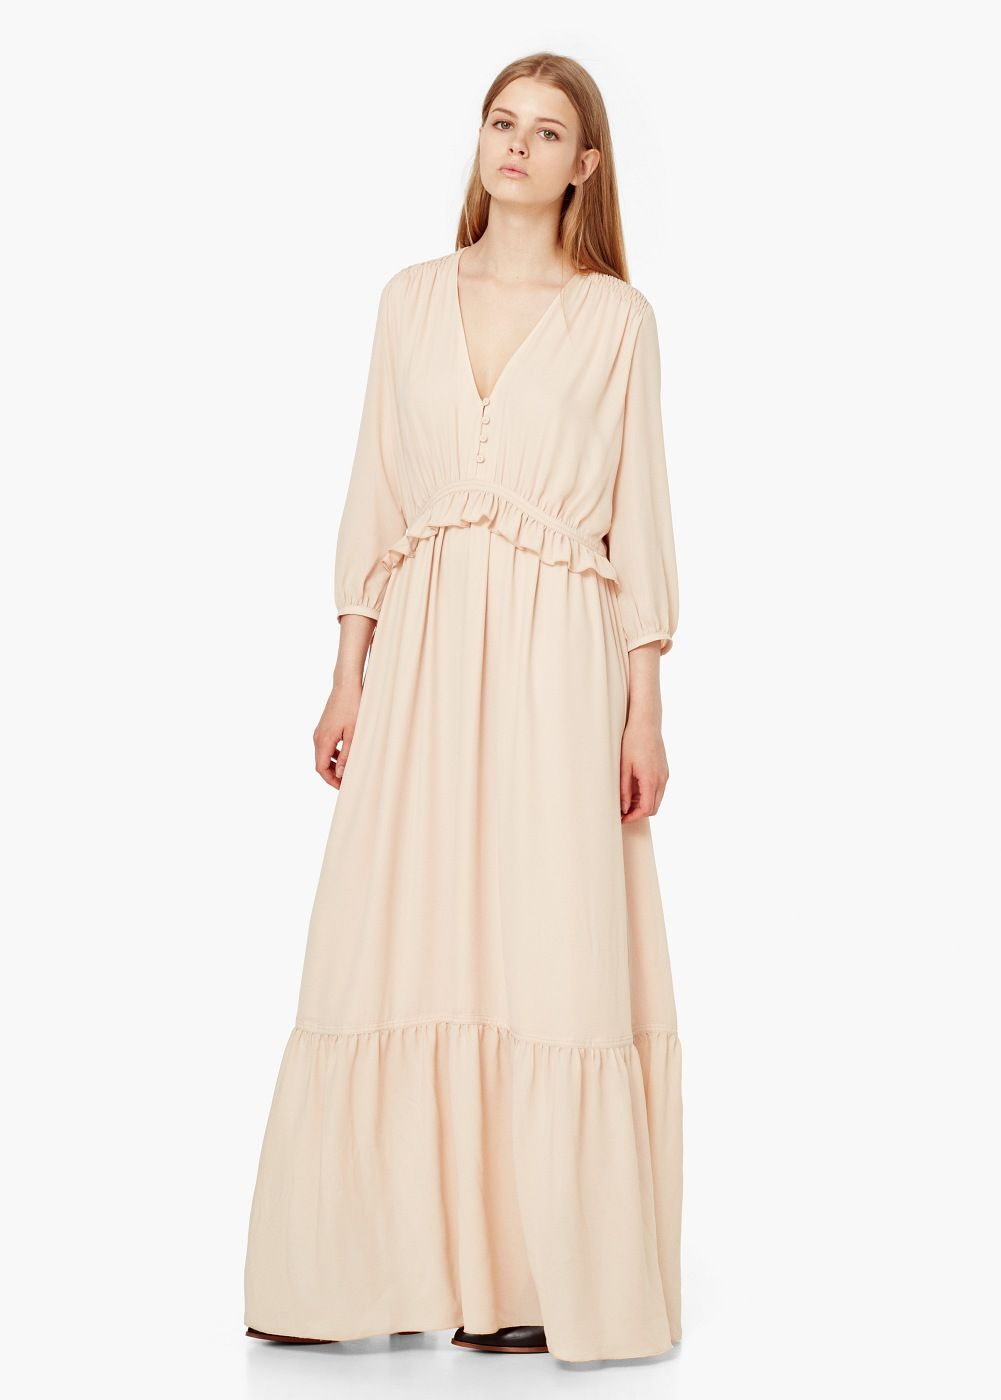 Flowy long dress Women Pinterest Dress casual Casual chic and